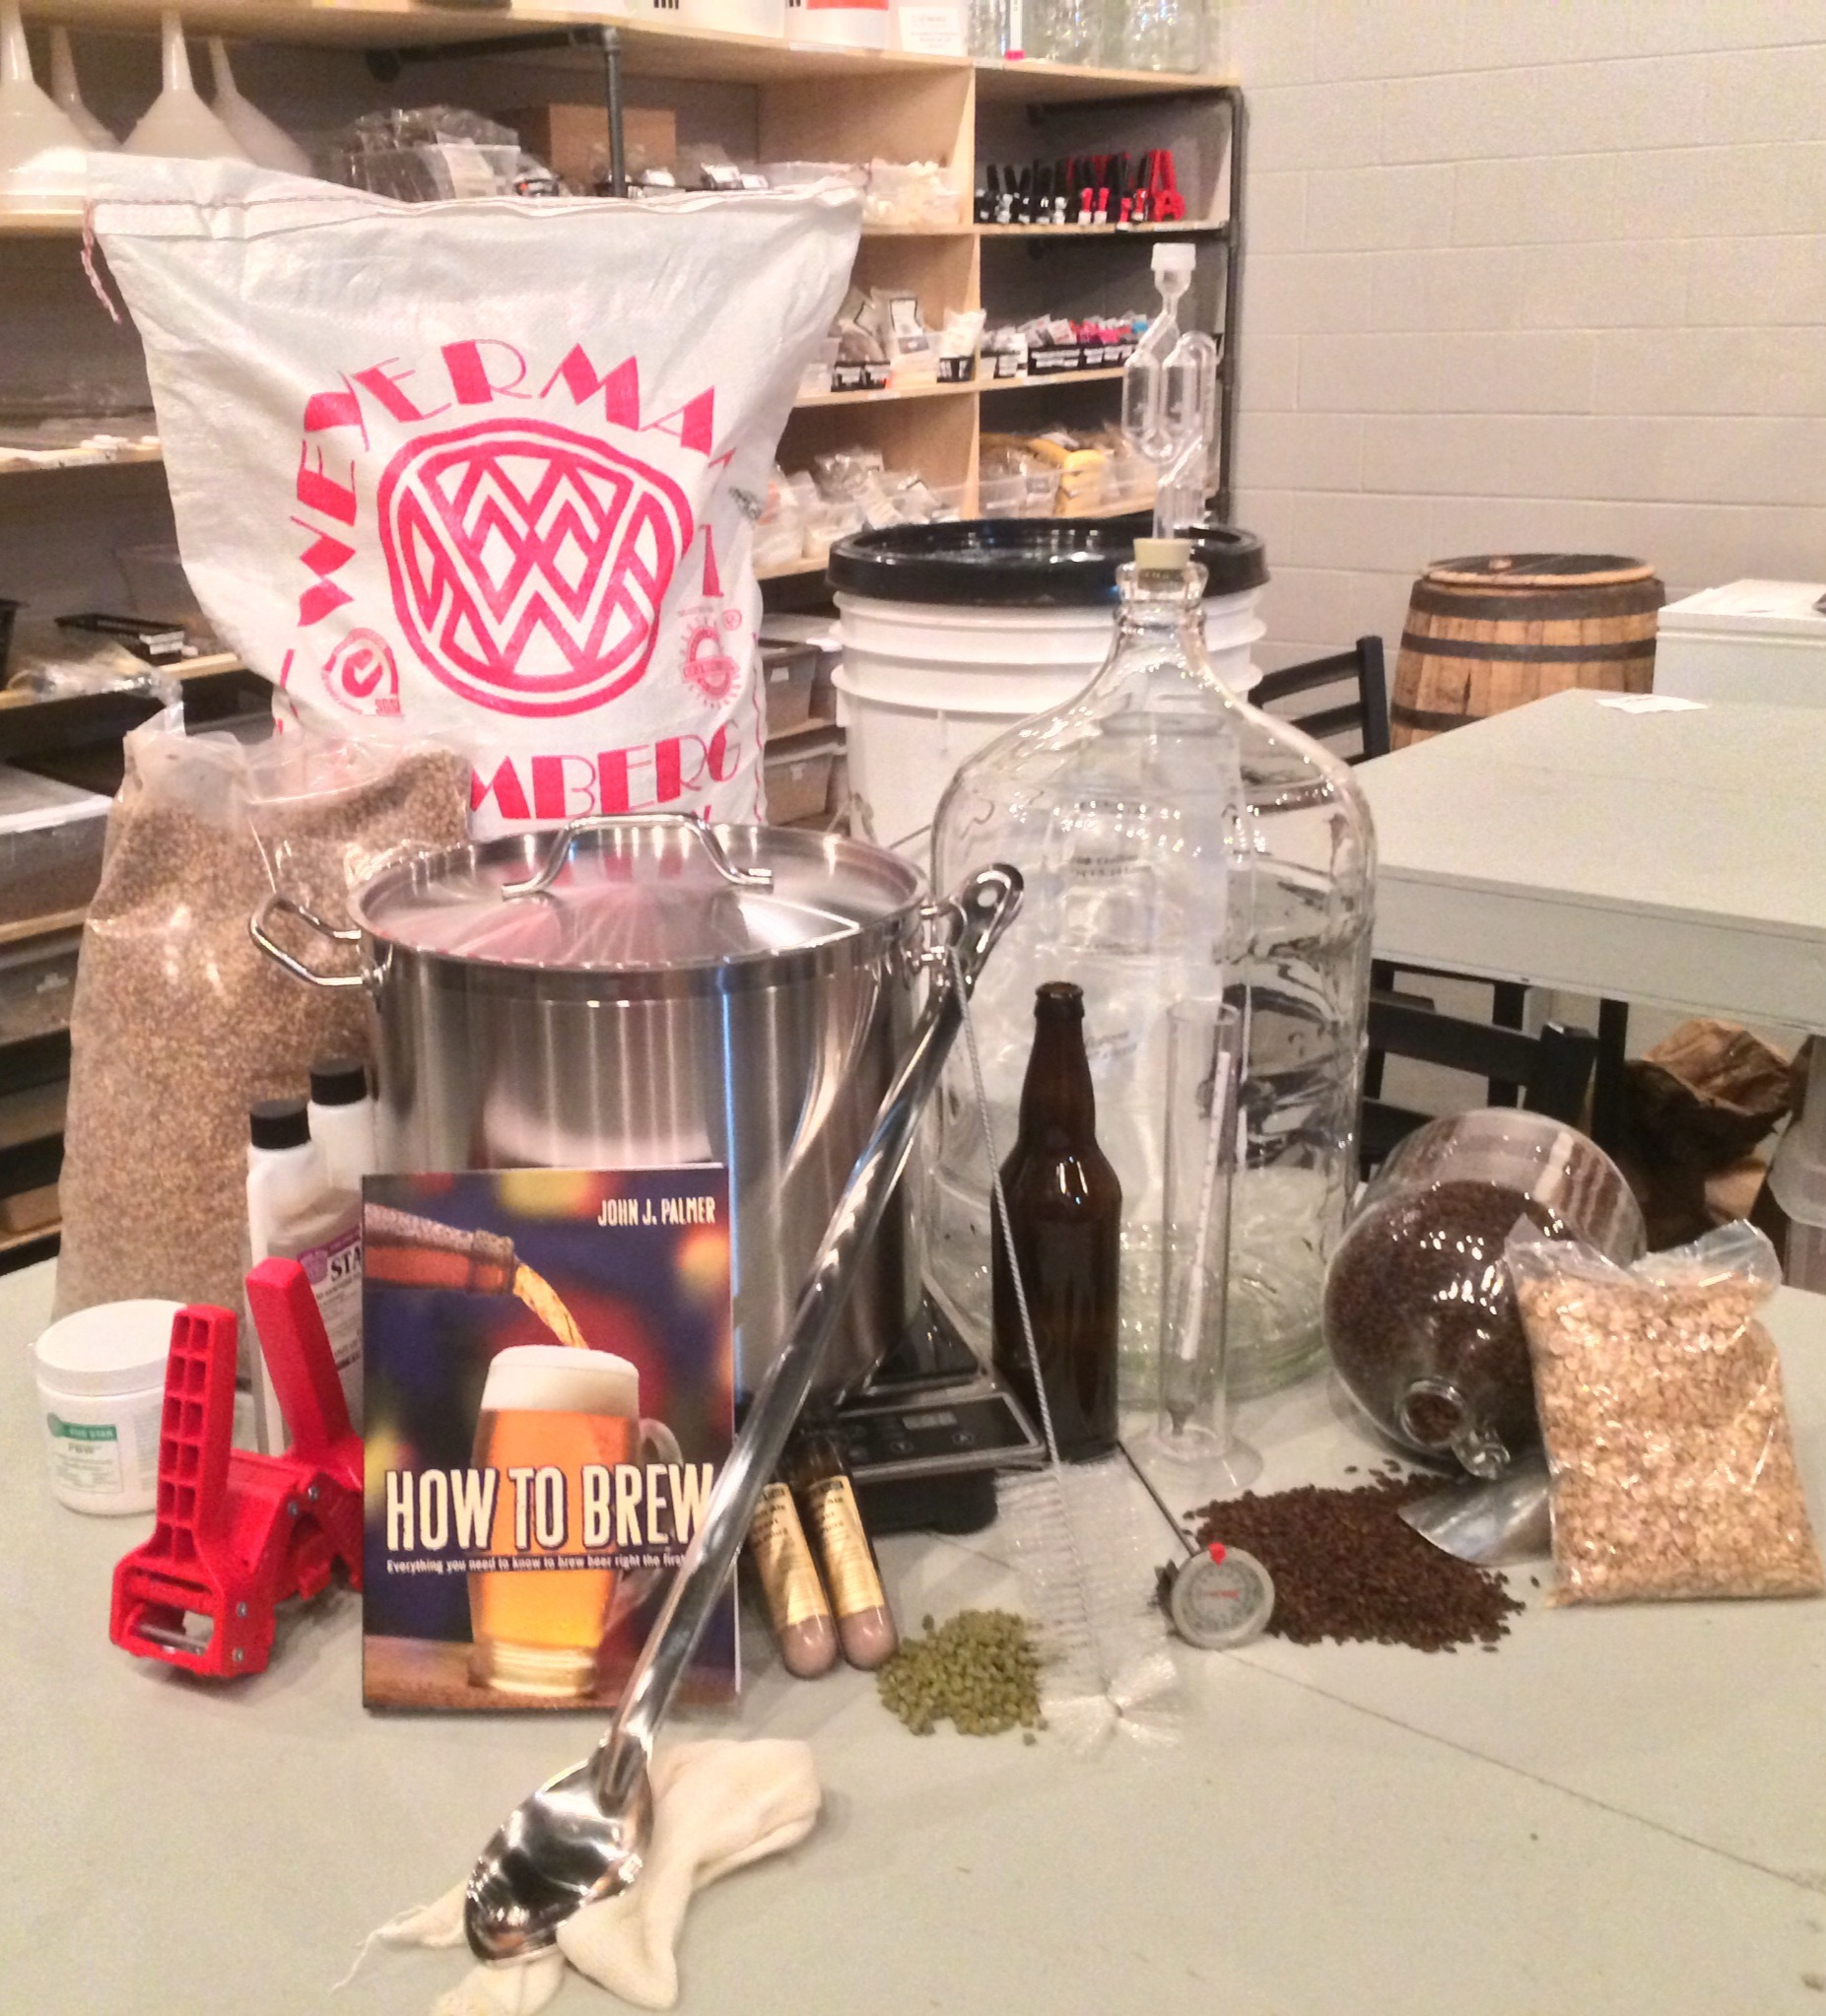 Home Brewing 101 Monday May 18th at 6pm